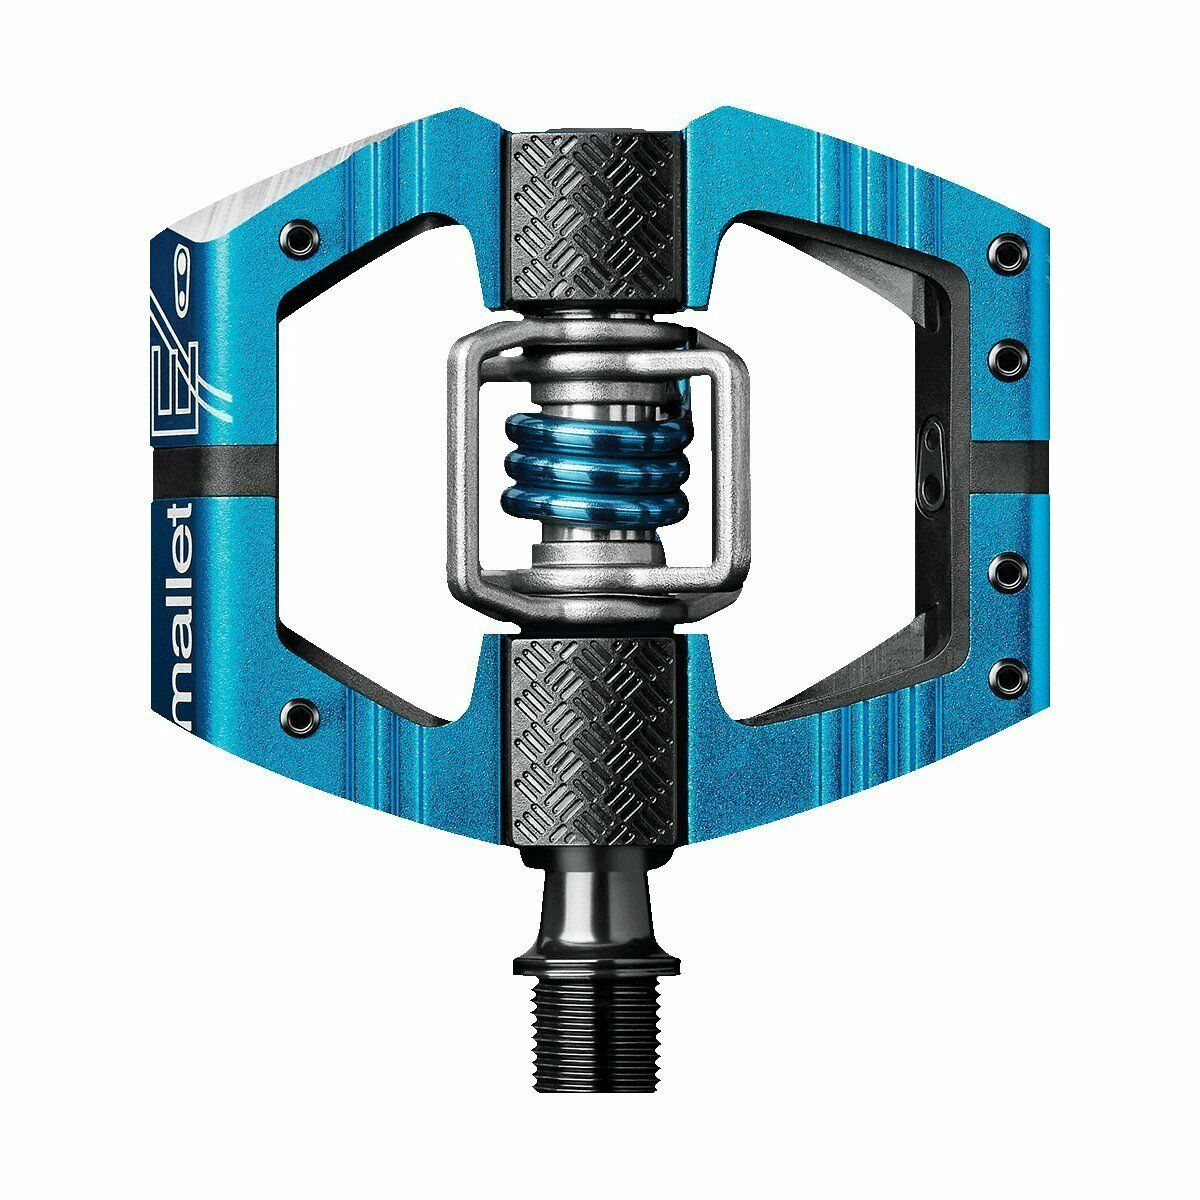 Crank Brothers Mallet E Bike Pedals Enduro Ride & Race - Blau - NEW